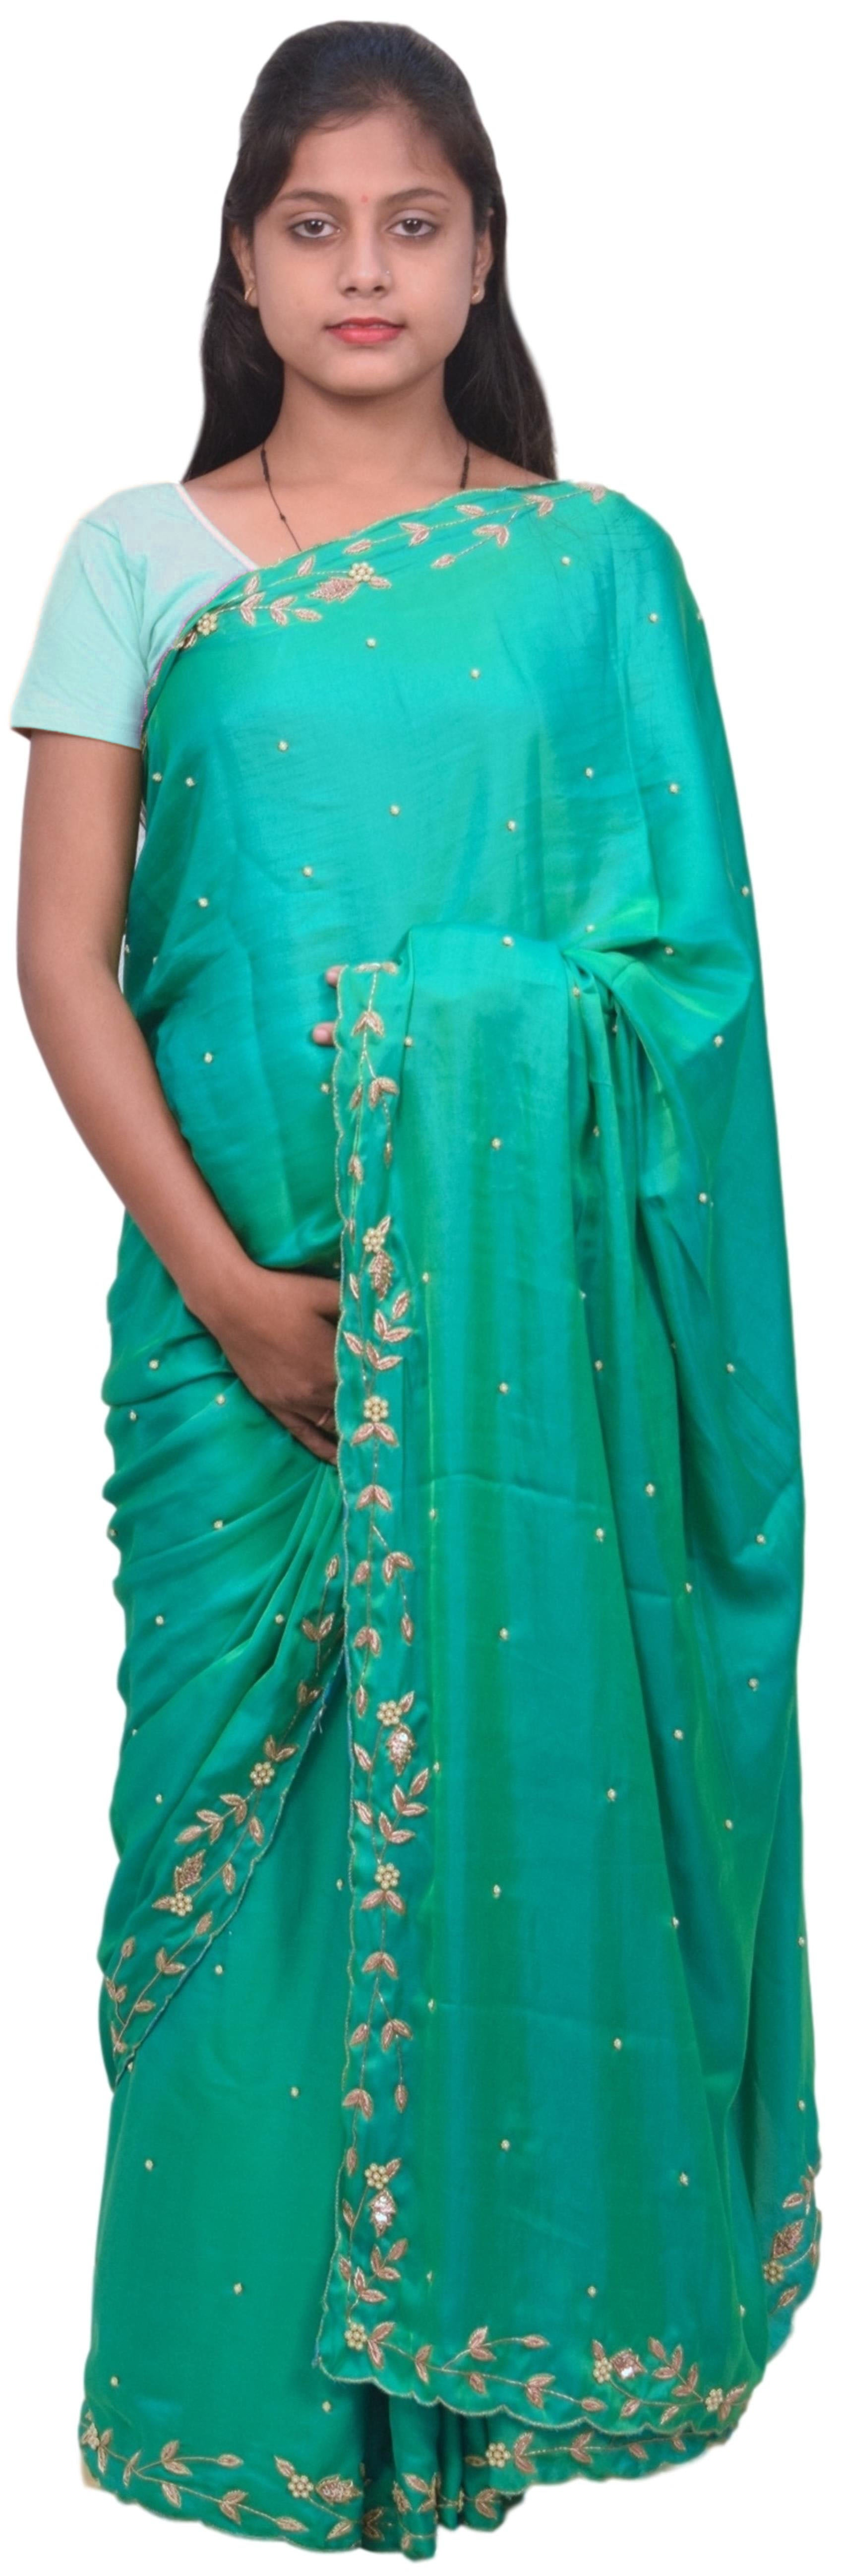 Green Designer Bridal PartyWear Silk Bullion Pearl Beads Stone Work Wedding Cutwork Border Saree Sari